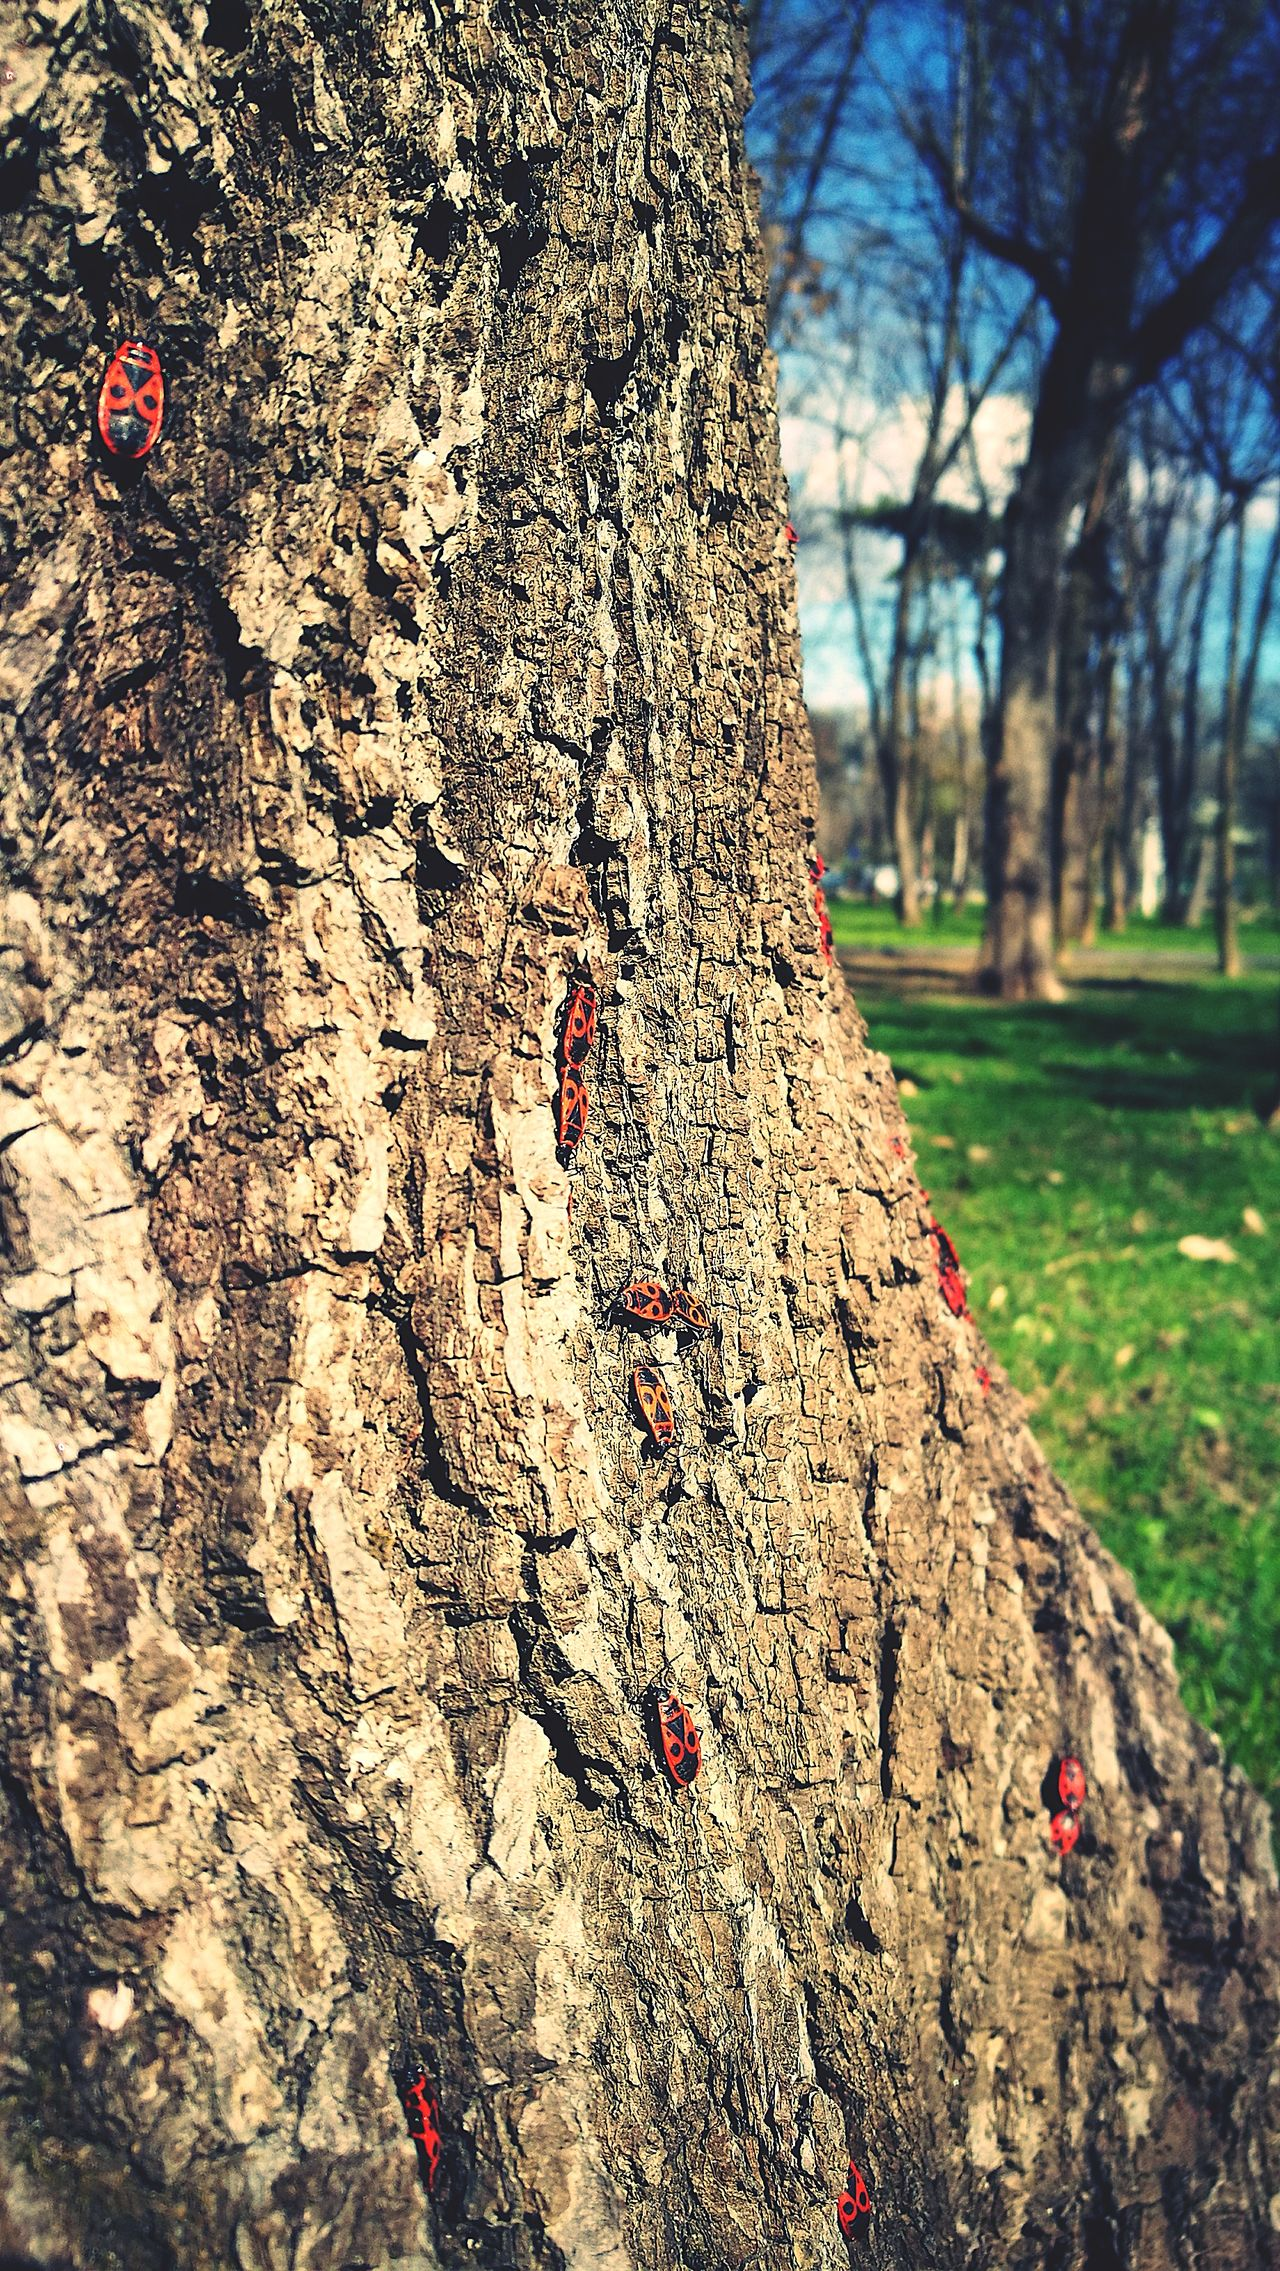 Tree Tree Trunk Nature Textured  Close-up Growth No People Outdoors Full Frame Day Insect Beauty In Nature Animal Themes